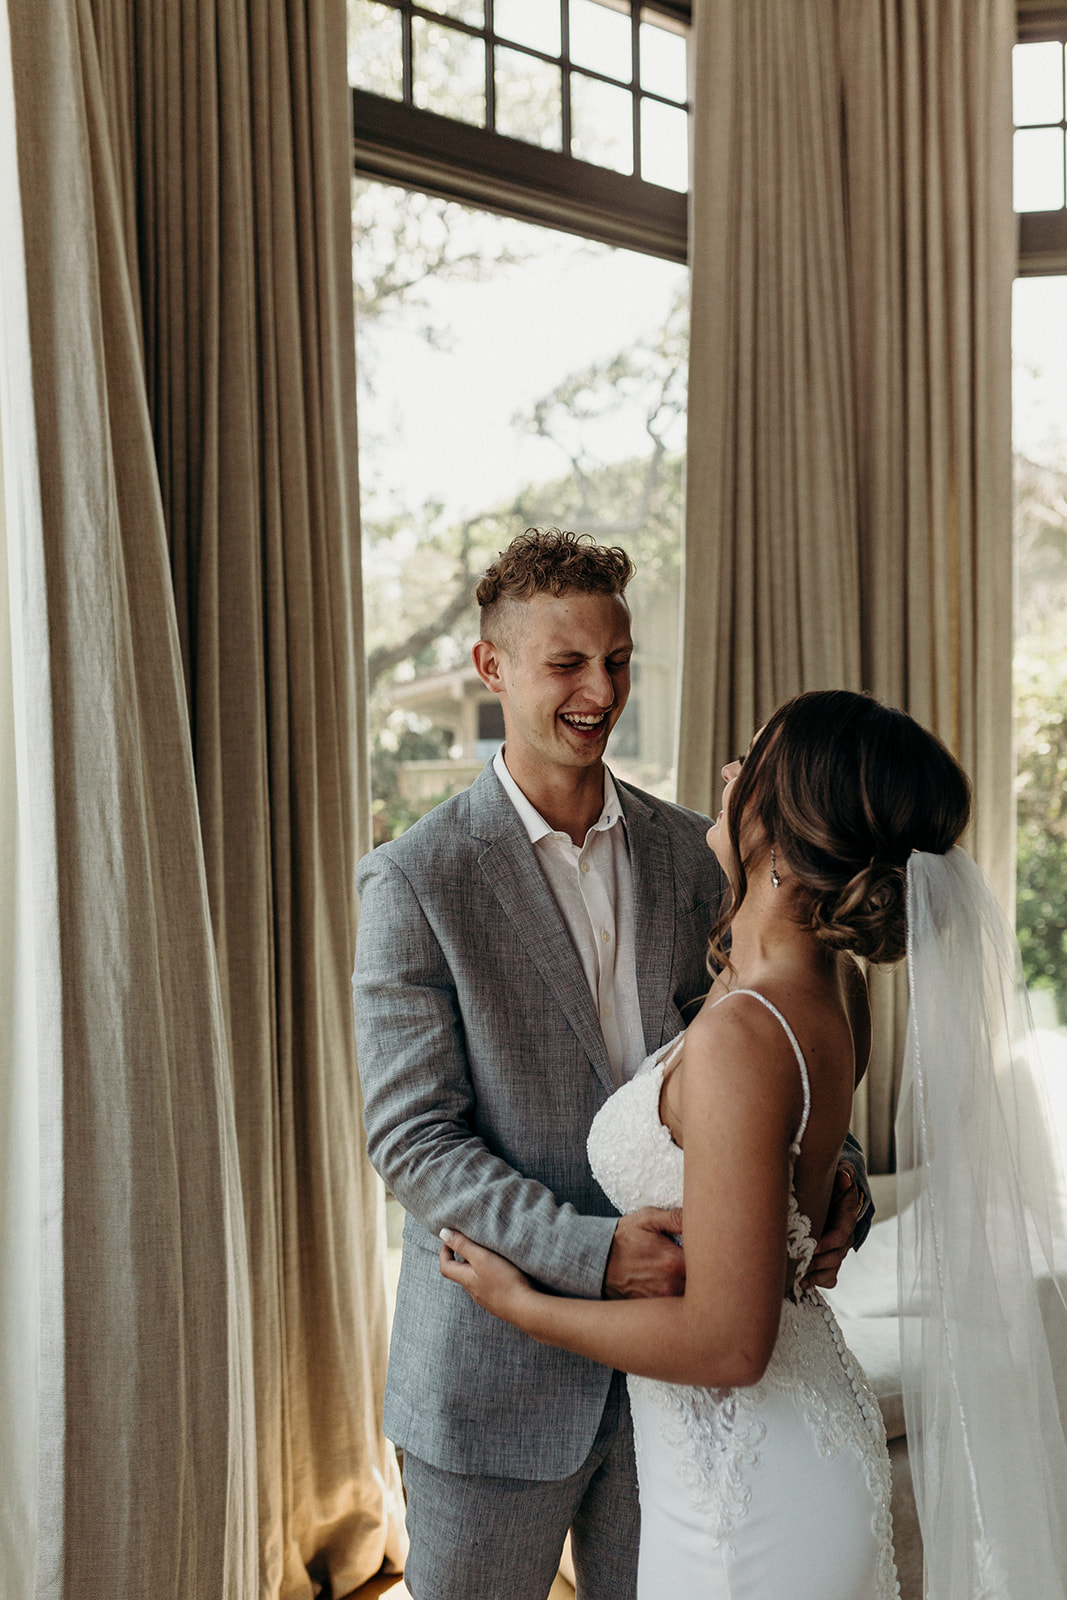 Hilton Head Island Micro Wedding - Addison + Morgan 160